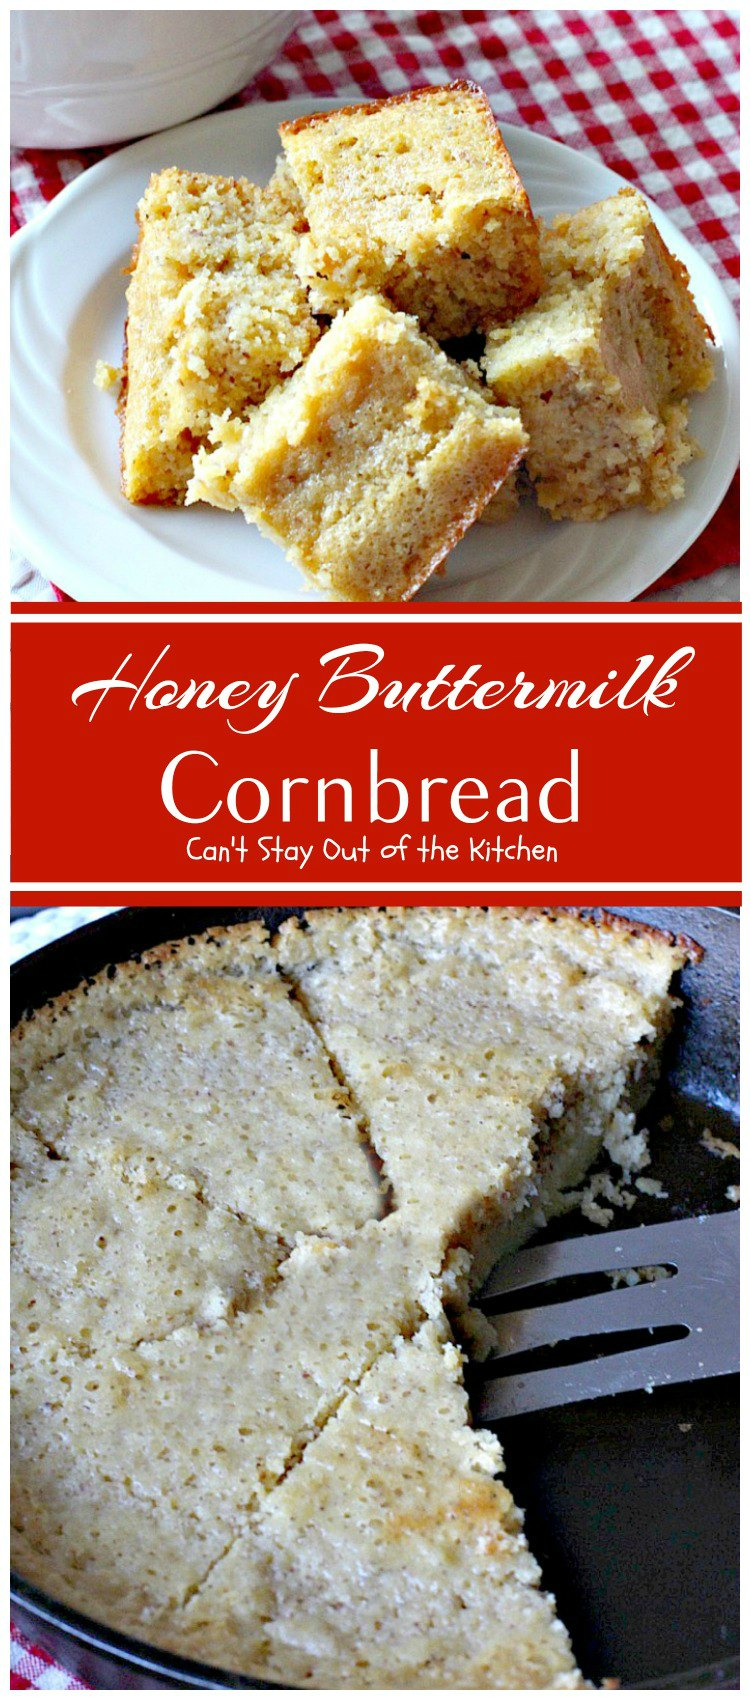 Honey Buttermilk Cornbread | Can't Stay Out of the Kitchen